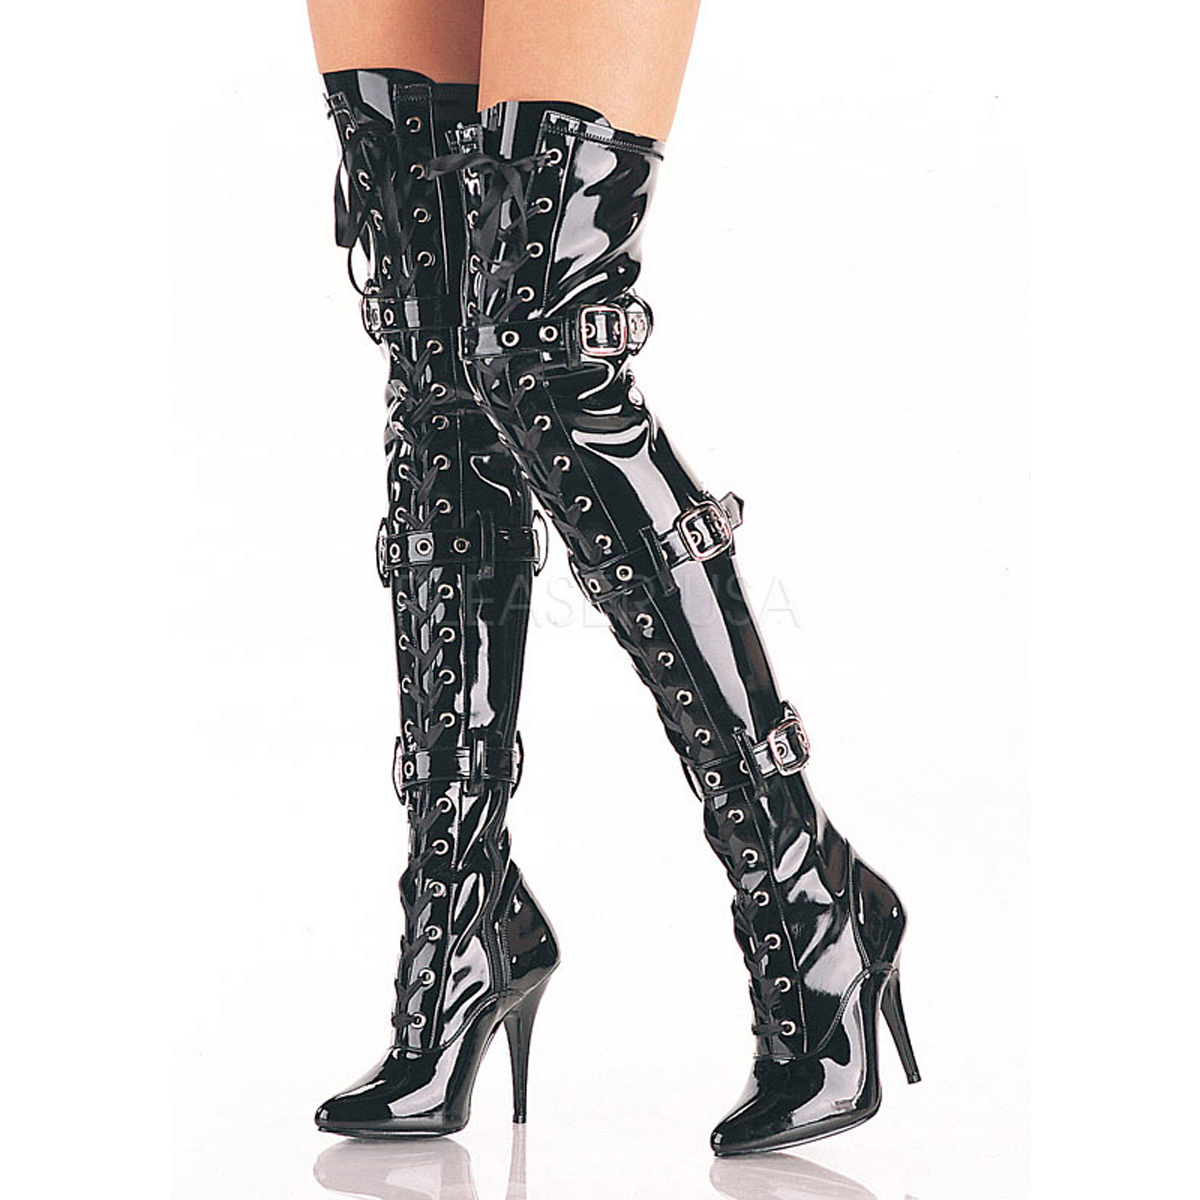 5 Inch Stiletto Heel Lace-Up Stretch Thigh High Boots w/Buckles